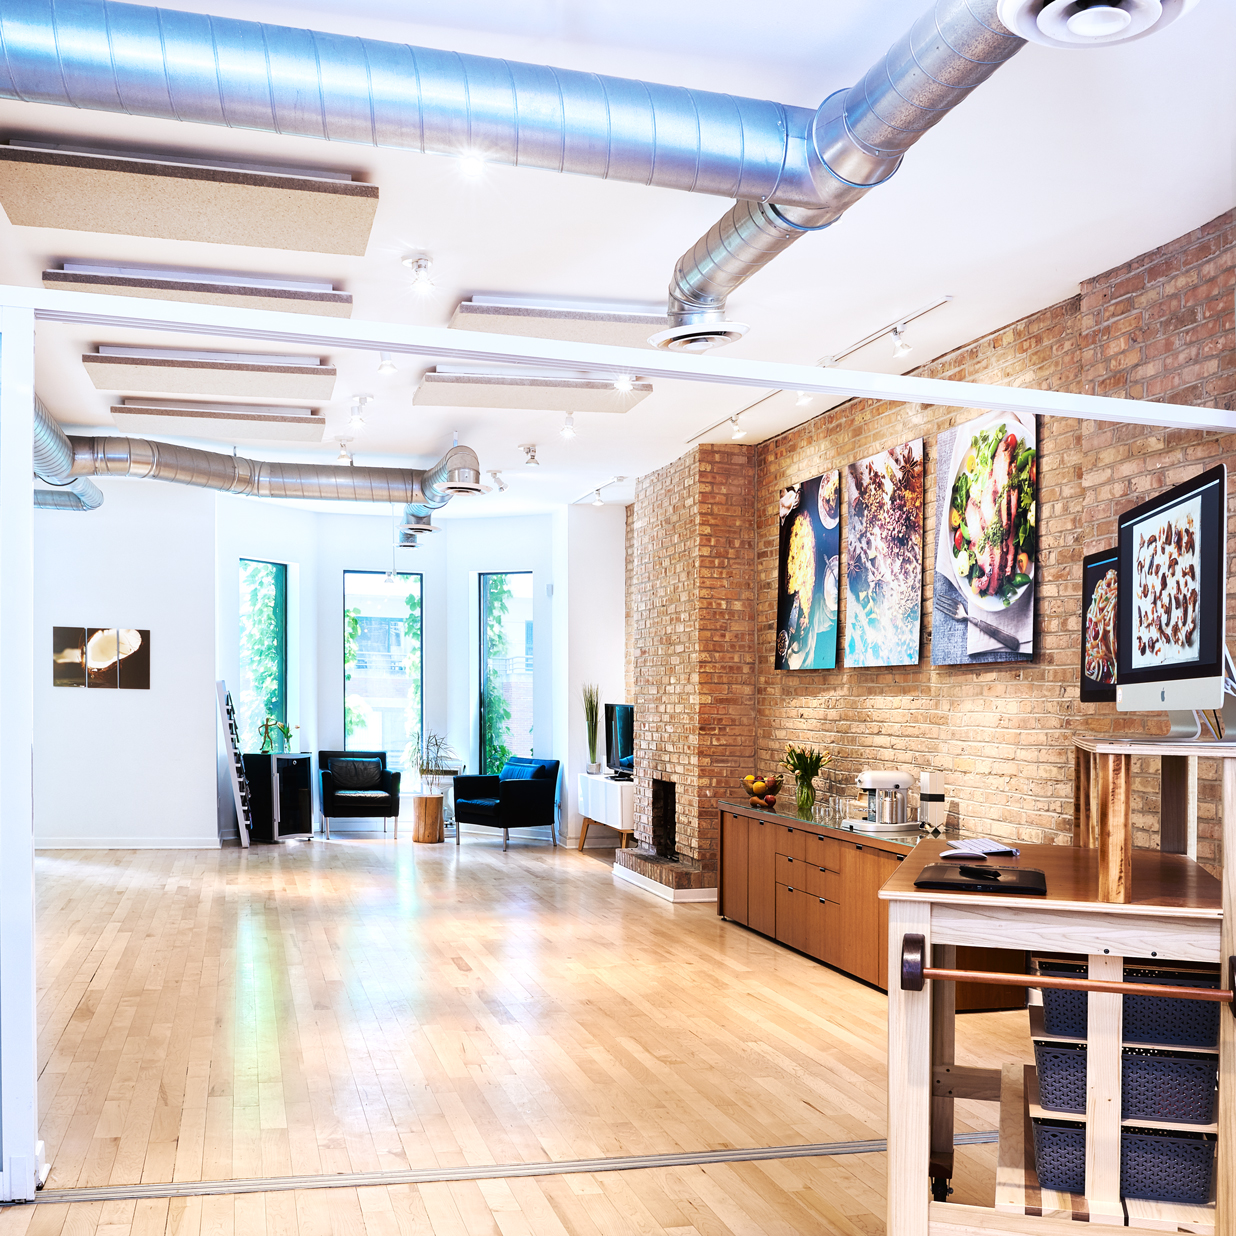 Flashlight Studio is in a modern and bright space comfortably nestled in the River North neighborhood of Chicago, just minutes from downtown.info@flashlightstudio.com(312) 863-201062 W HuronChicago, IL 60654 -